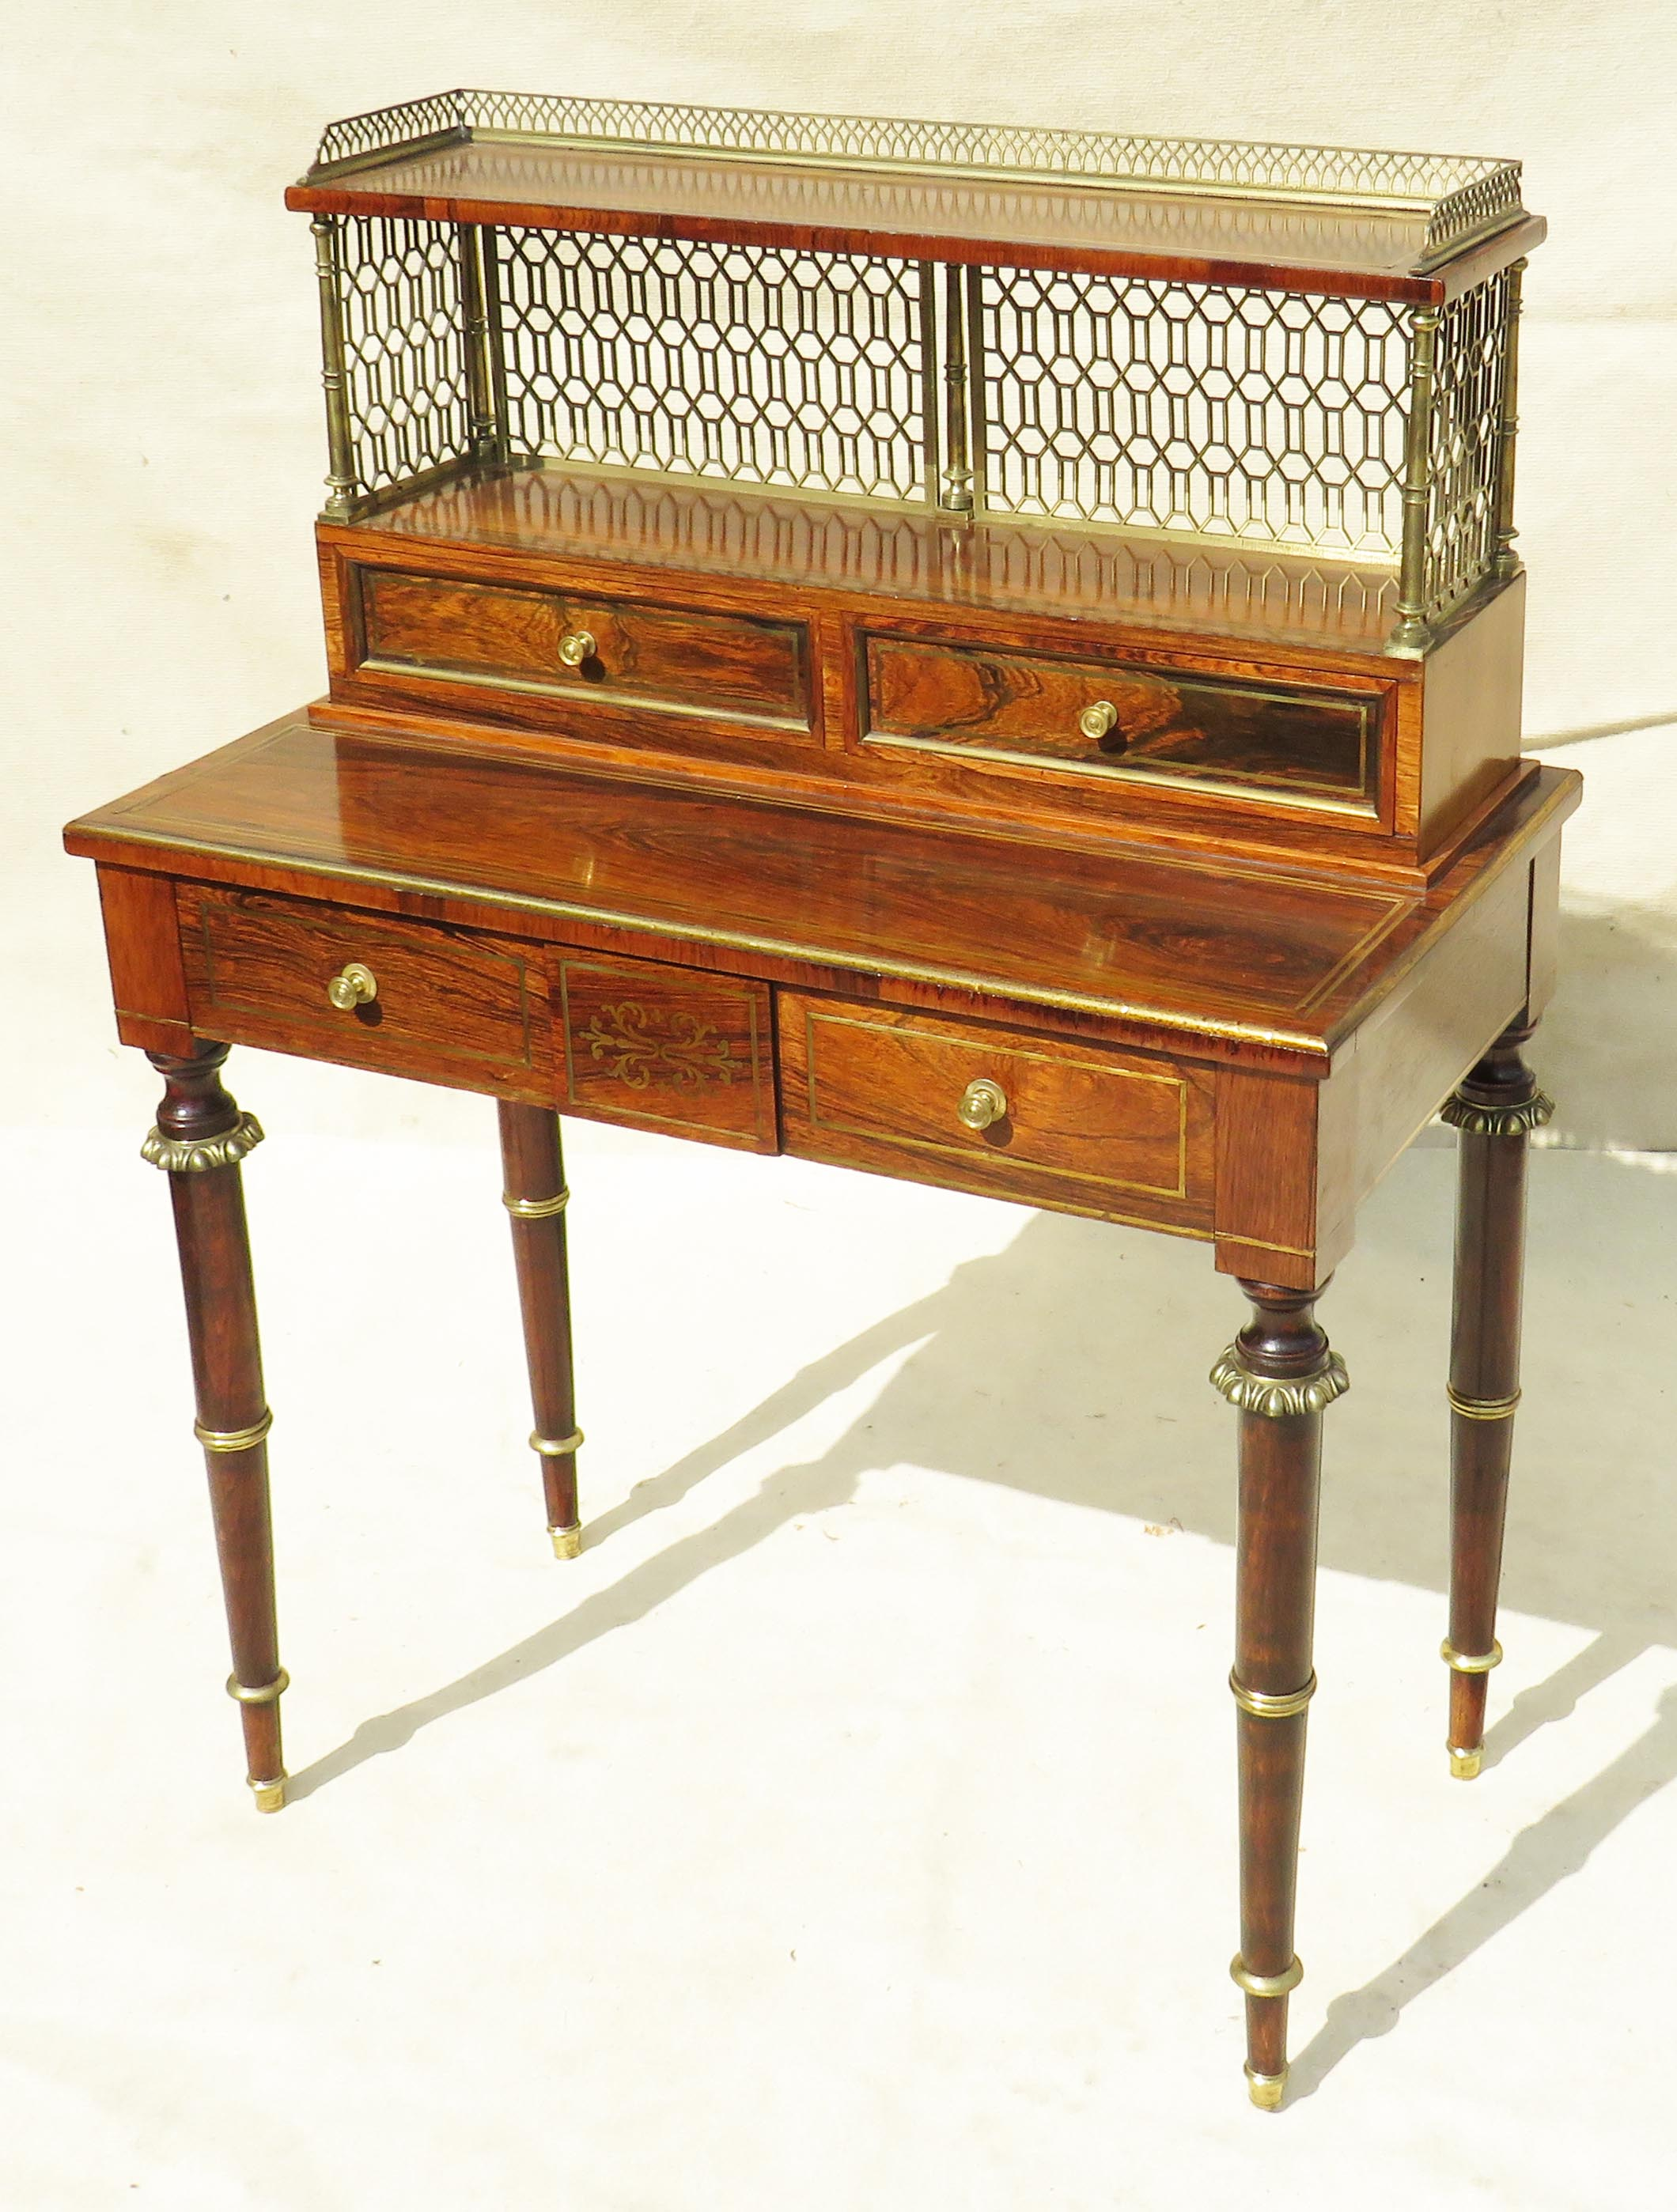 Superb quality Regency period early 19th Century rosewood bonheur du jour